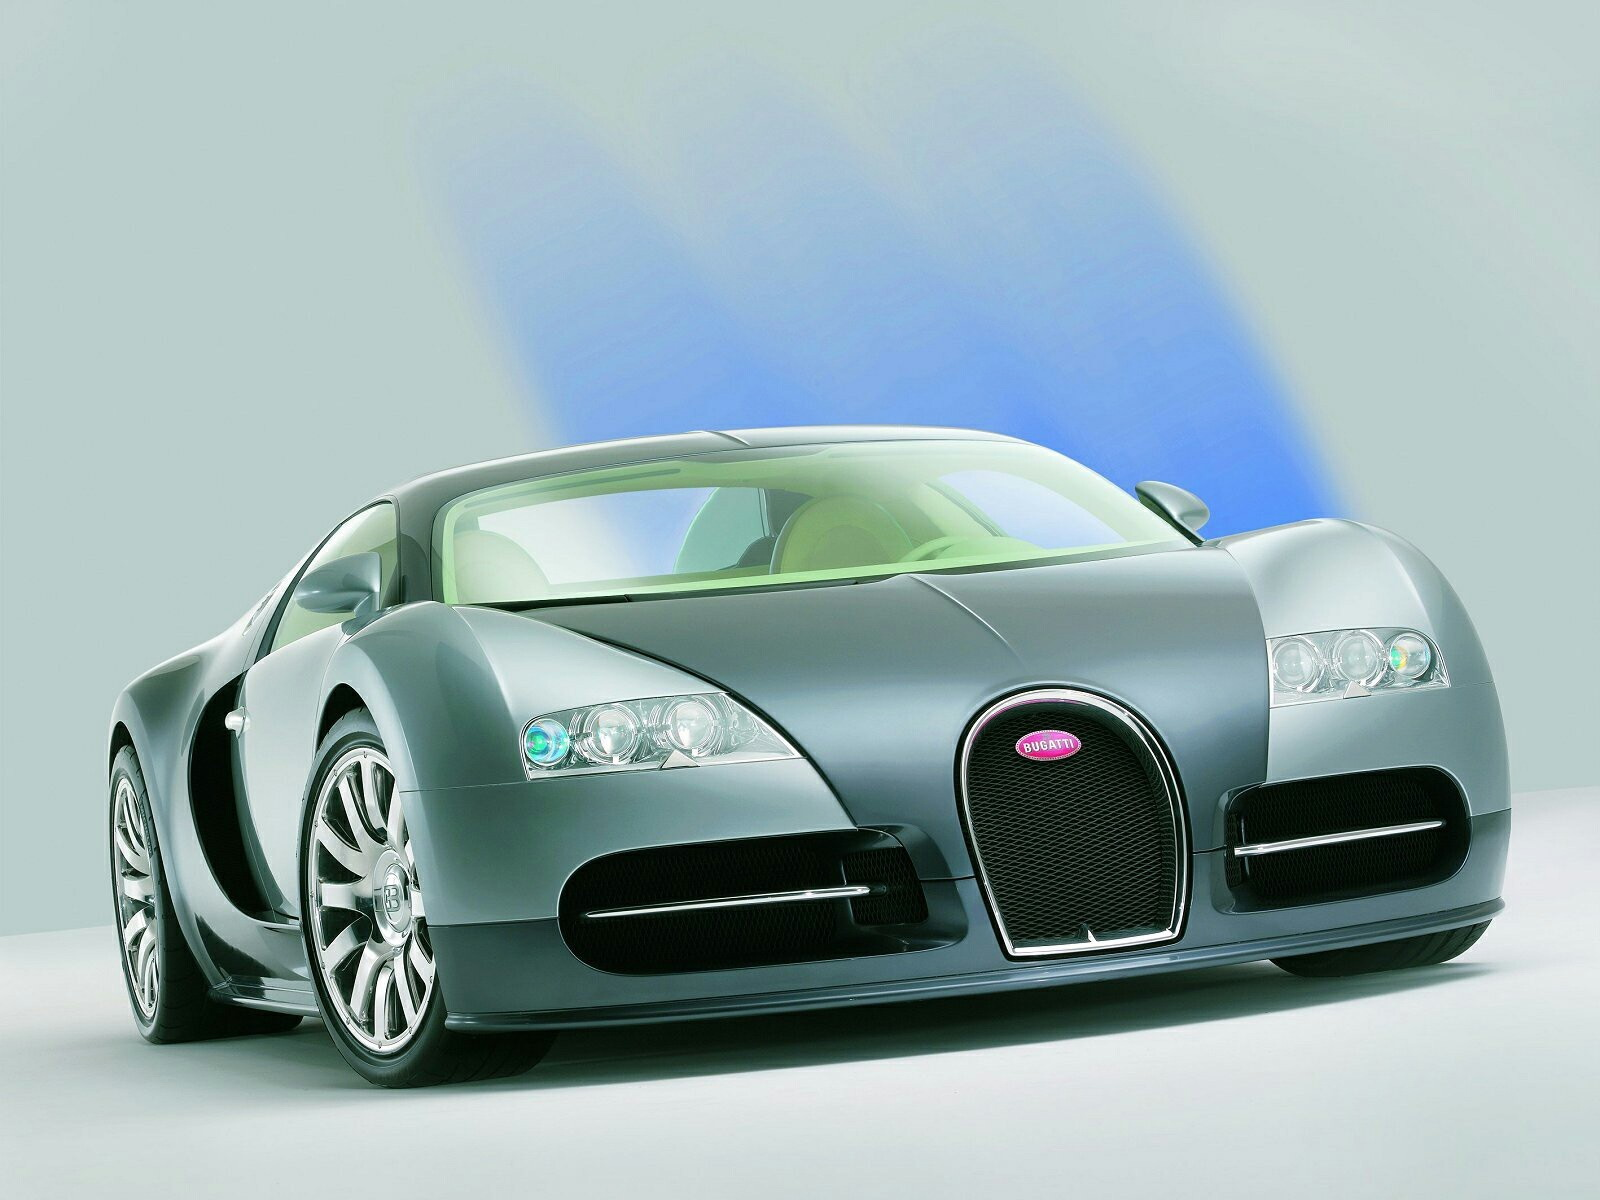 Luxurious and expensive car Bugatti wallpaper.